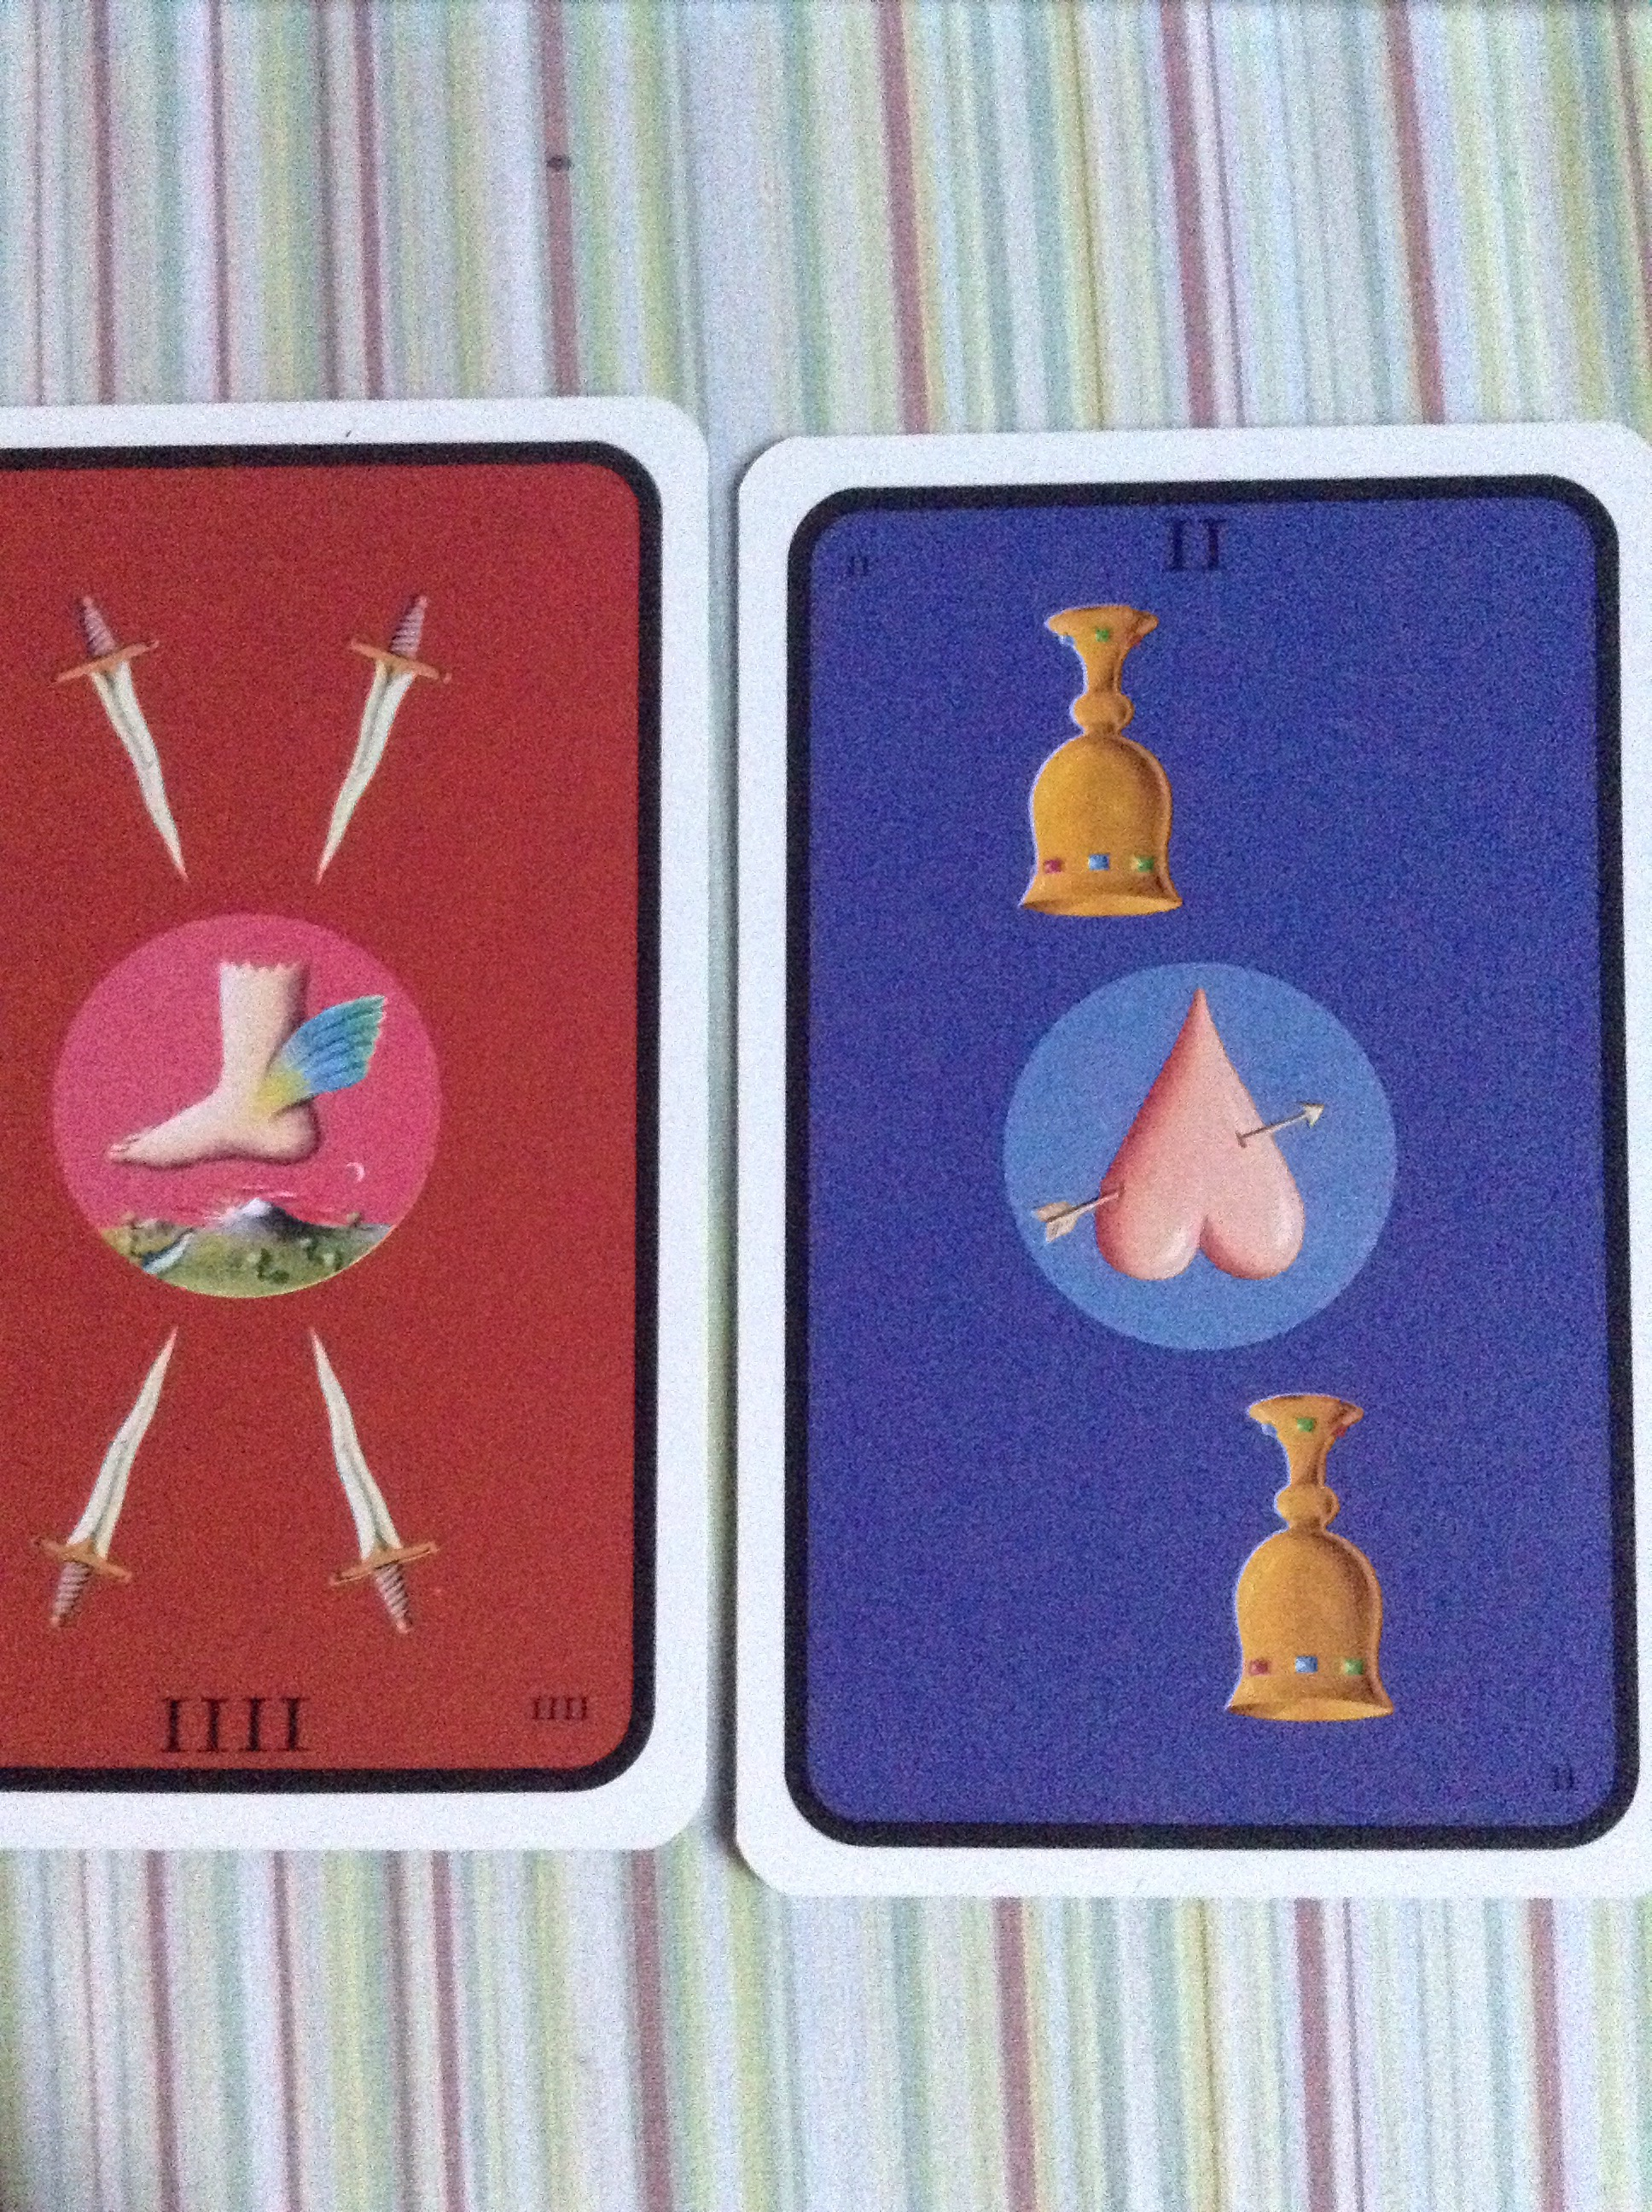 4 Of Swords And 2 Of Cups Rx As Advice